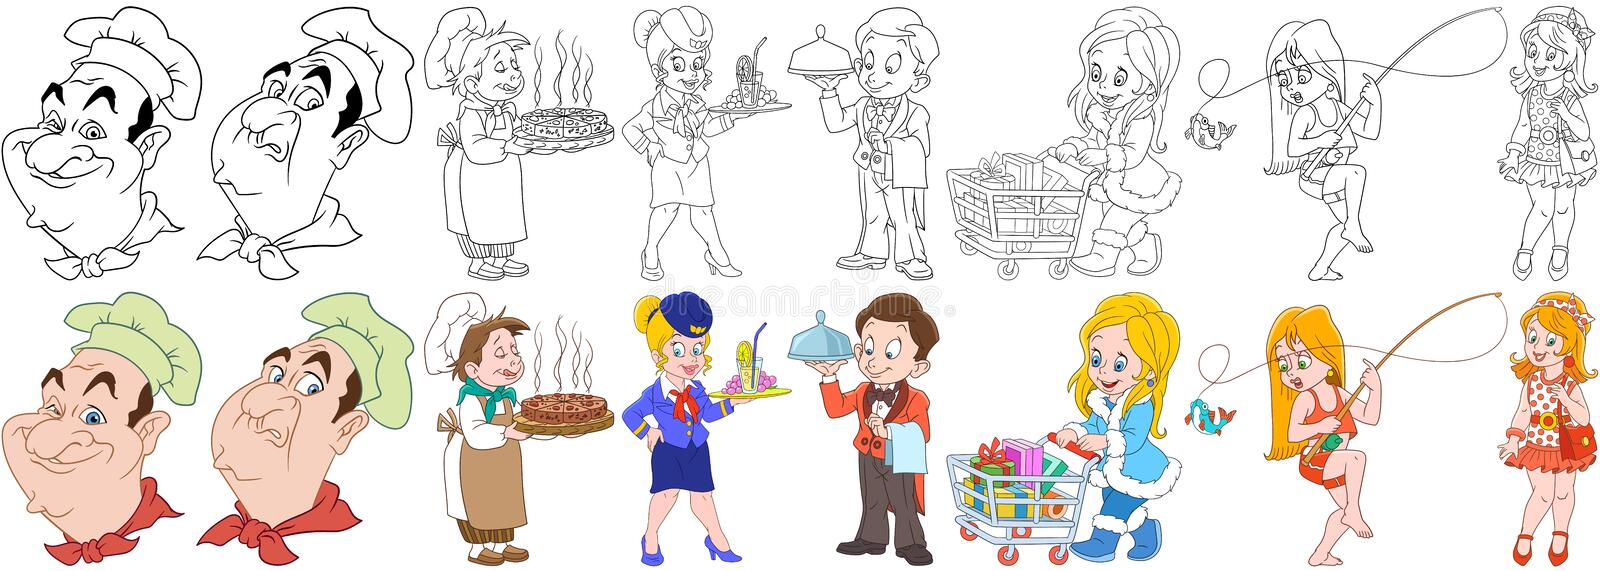 Cartoon culinary professions set stock image